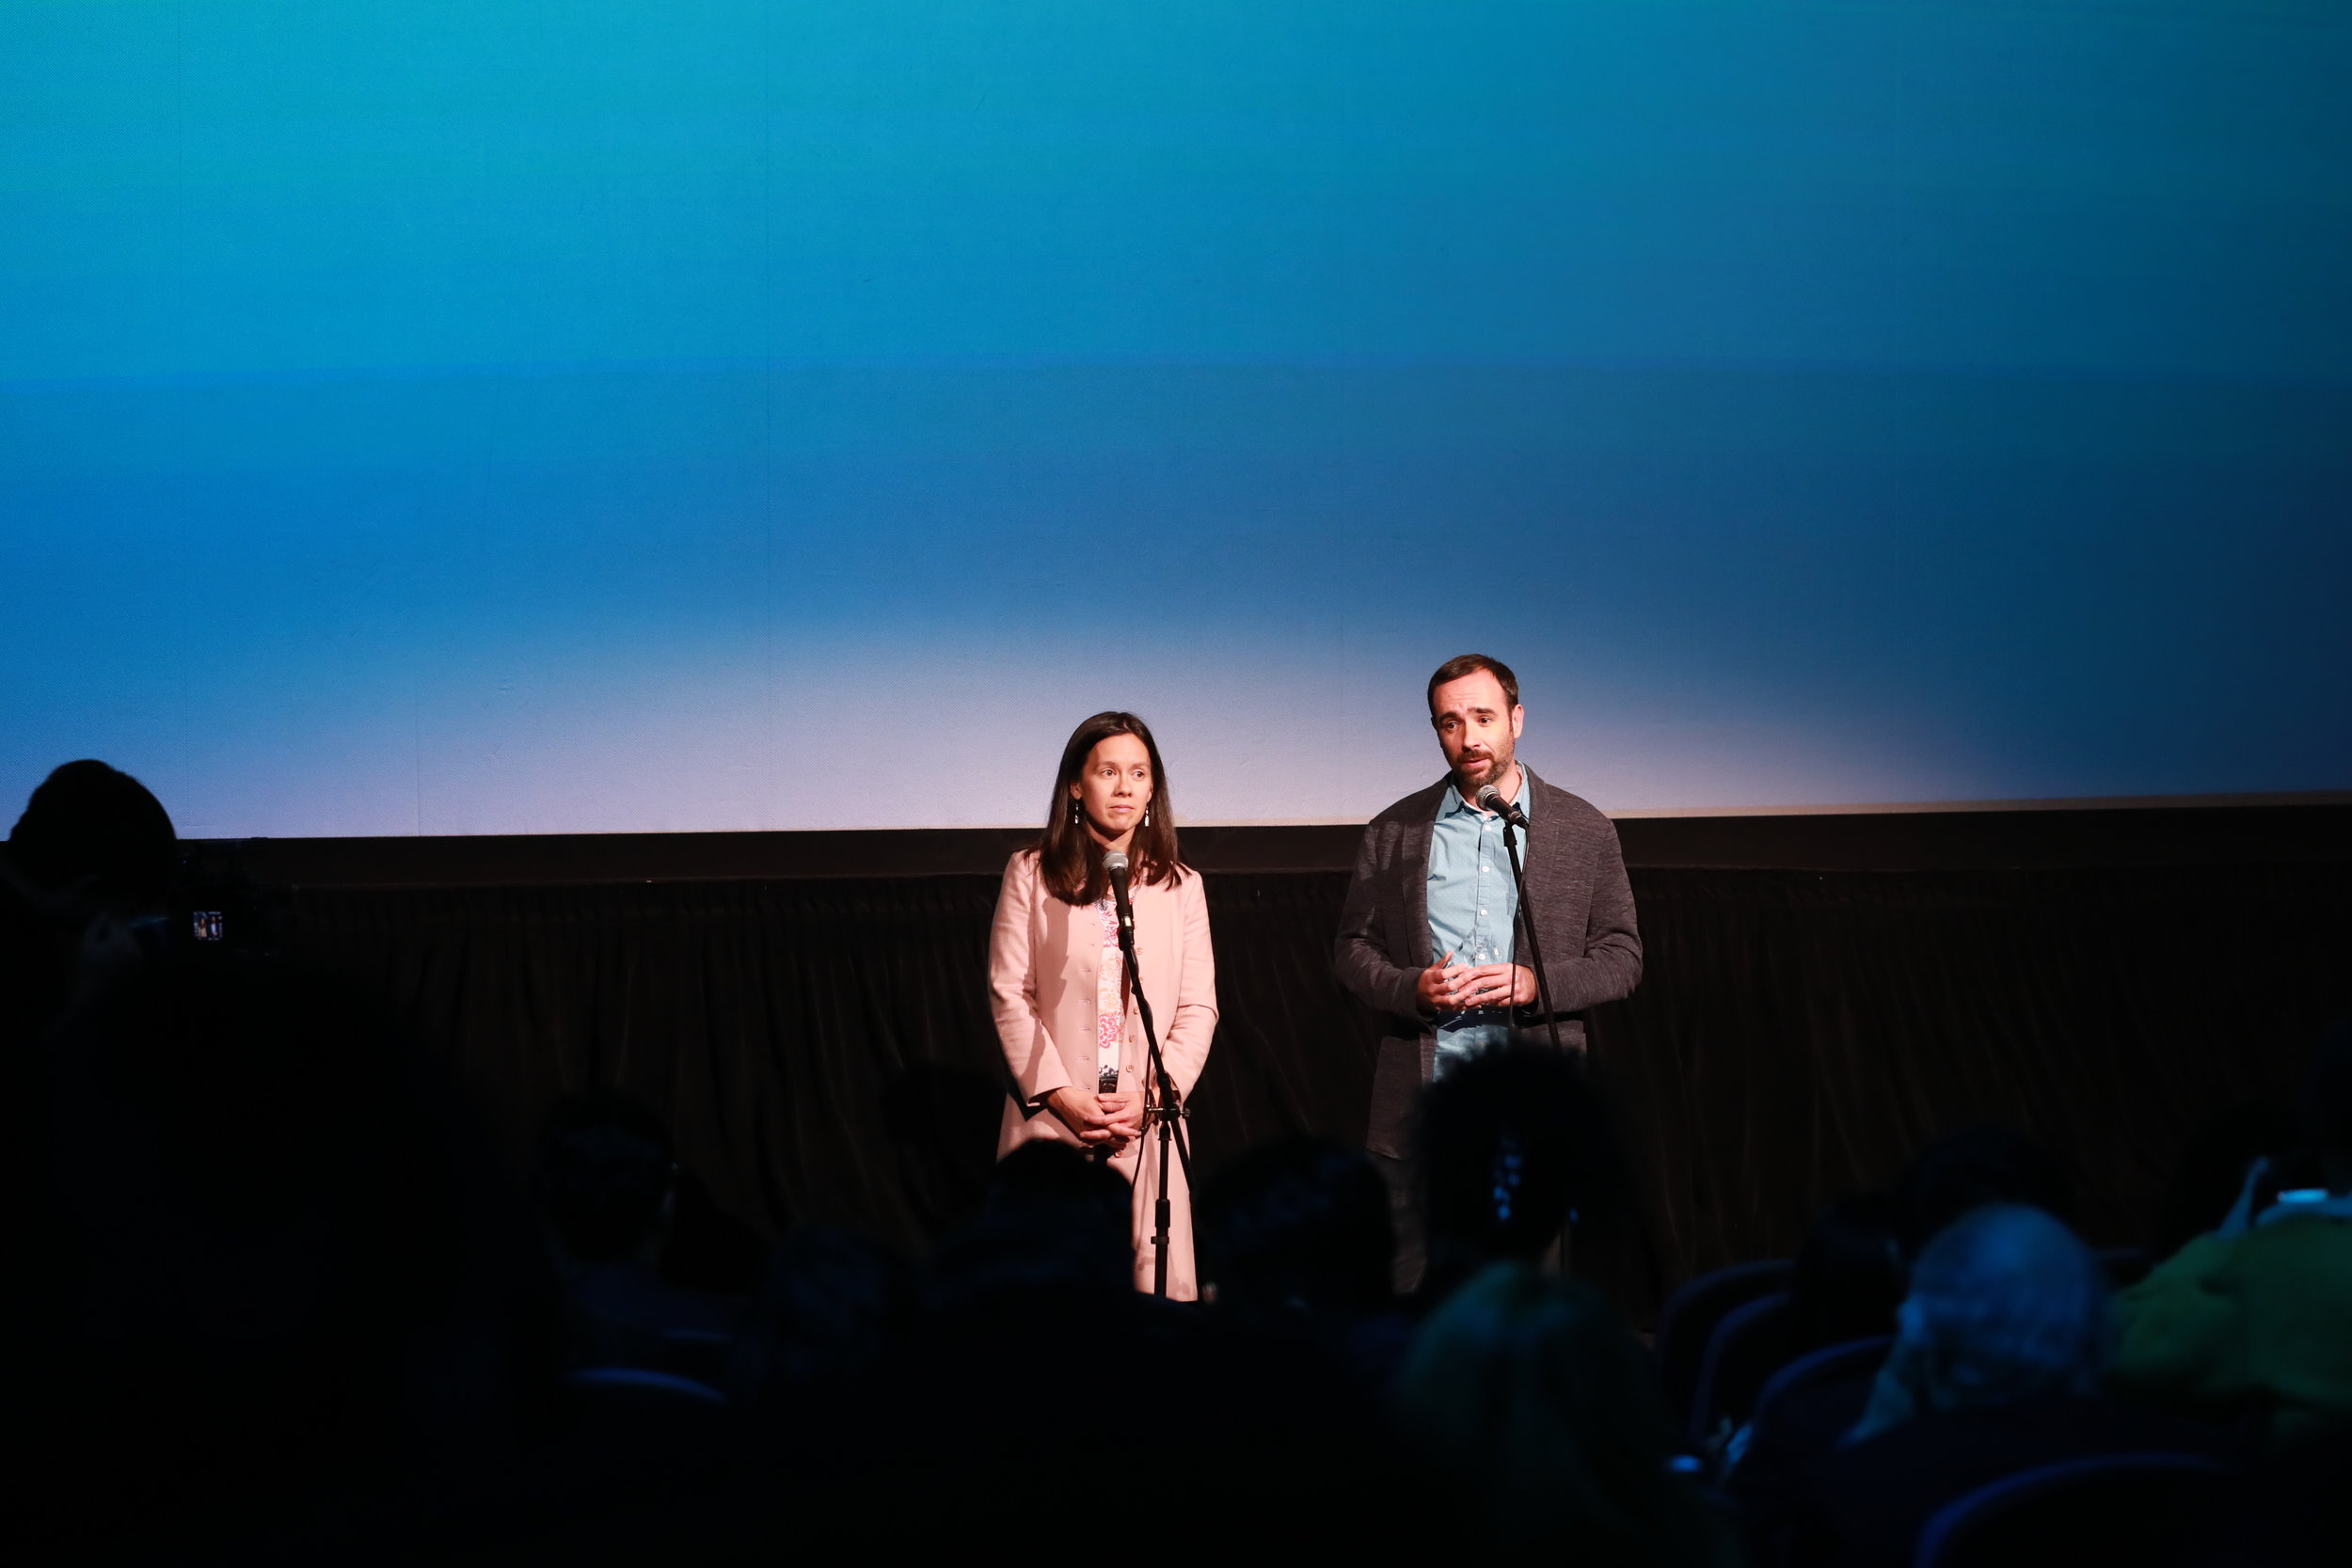 Melanie Ansley, producer of  King of Peking  (left) Sam Voutas, director of  King of Peking  (right)